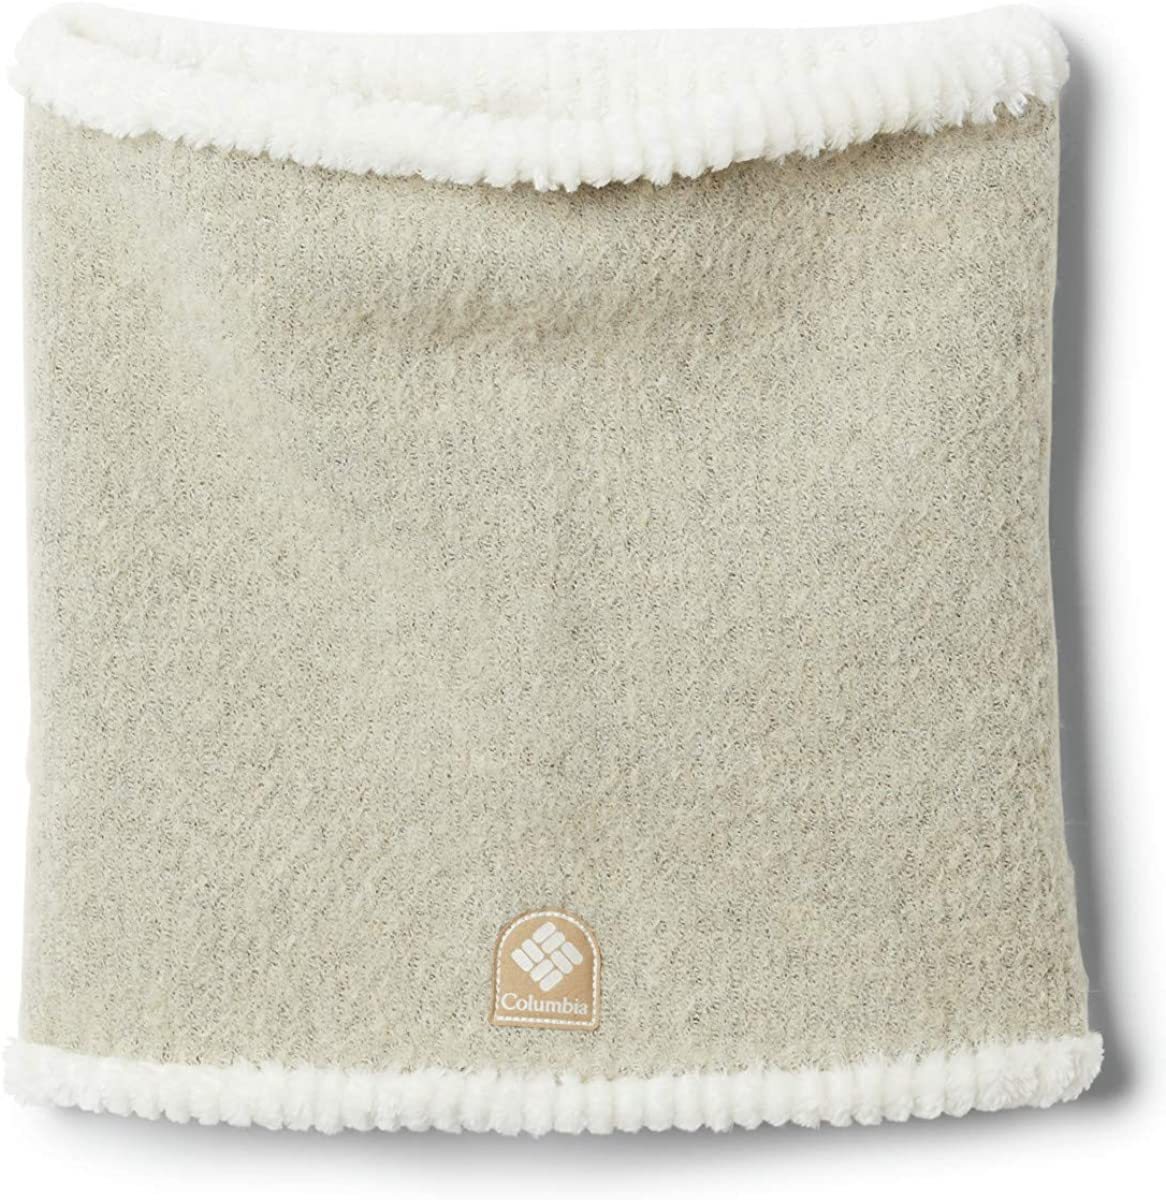 Columbia womens Winter Sales results No. 1 Blur Plush Translated Lined Gaiter Headwrap Chalk